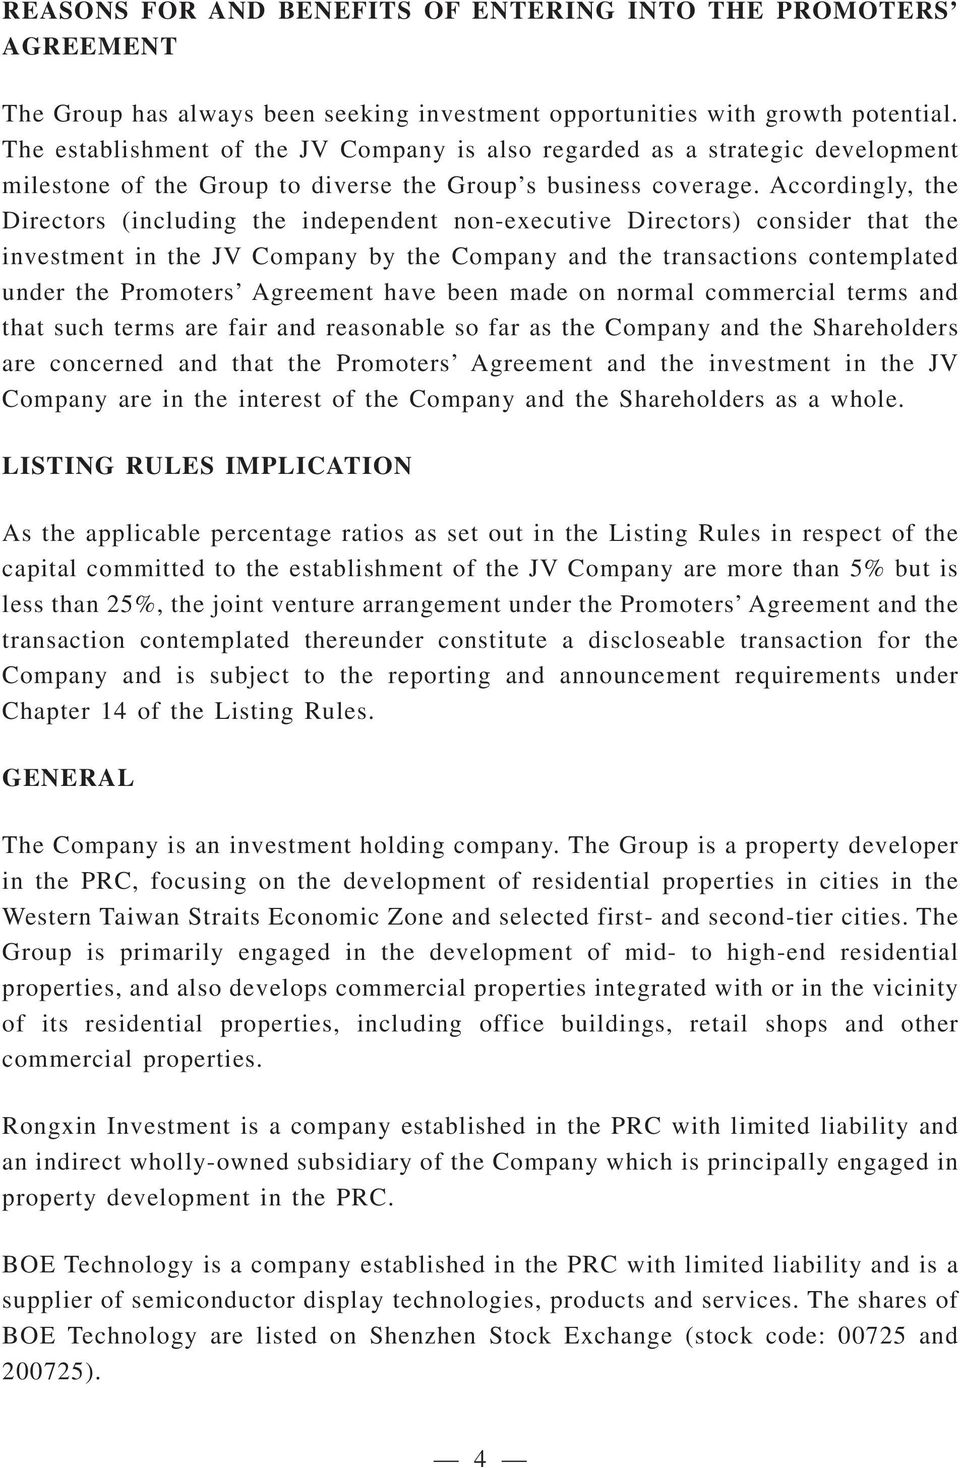 Accordingly, the Directors (including the independent non-executive Directors) consider that the investment in the JV Company by the Company and the transactions contemplated under the Promoters